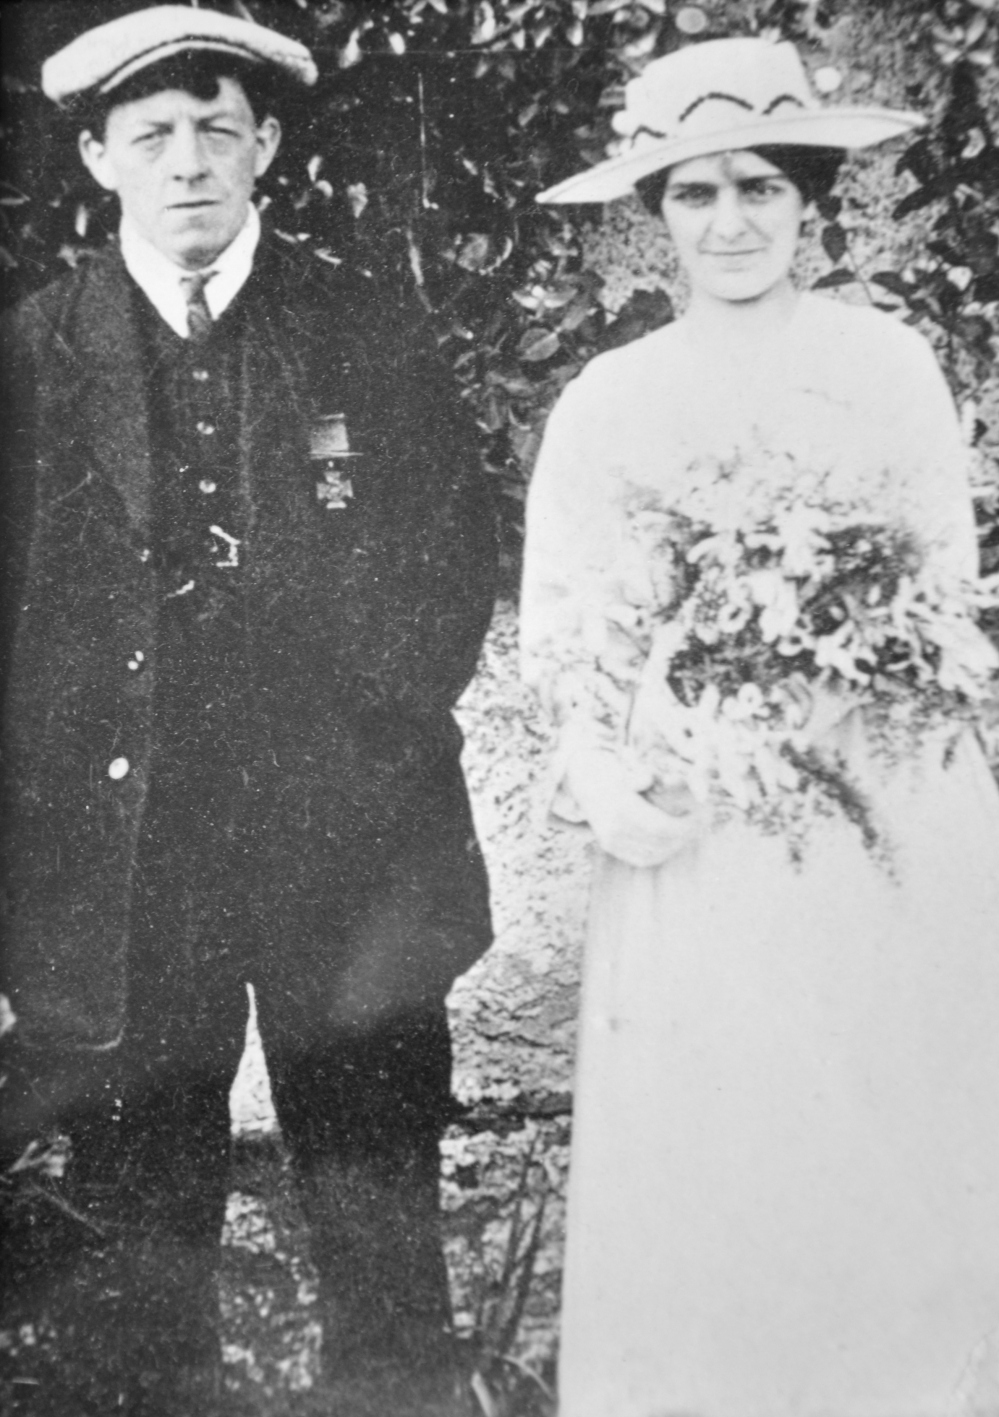 Jimmy and Lizzie on their wedding day